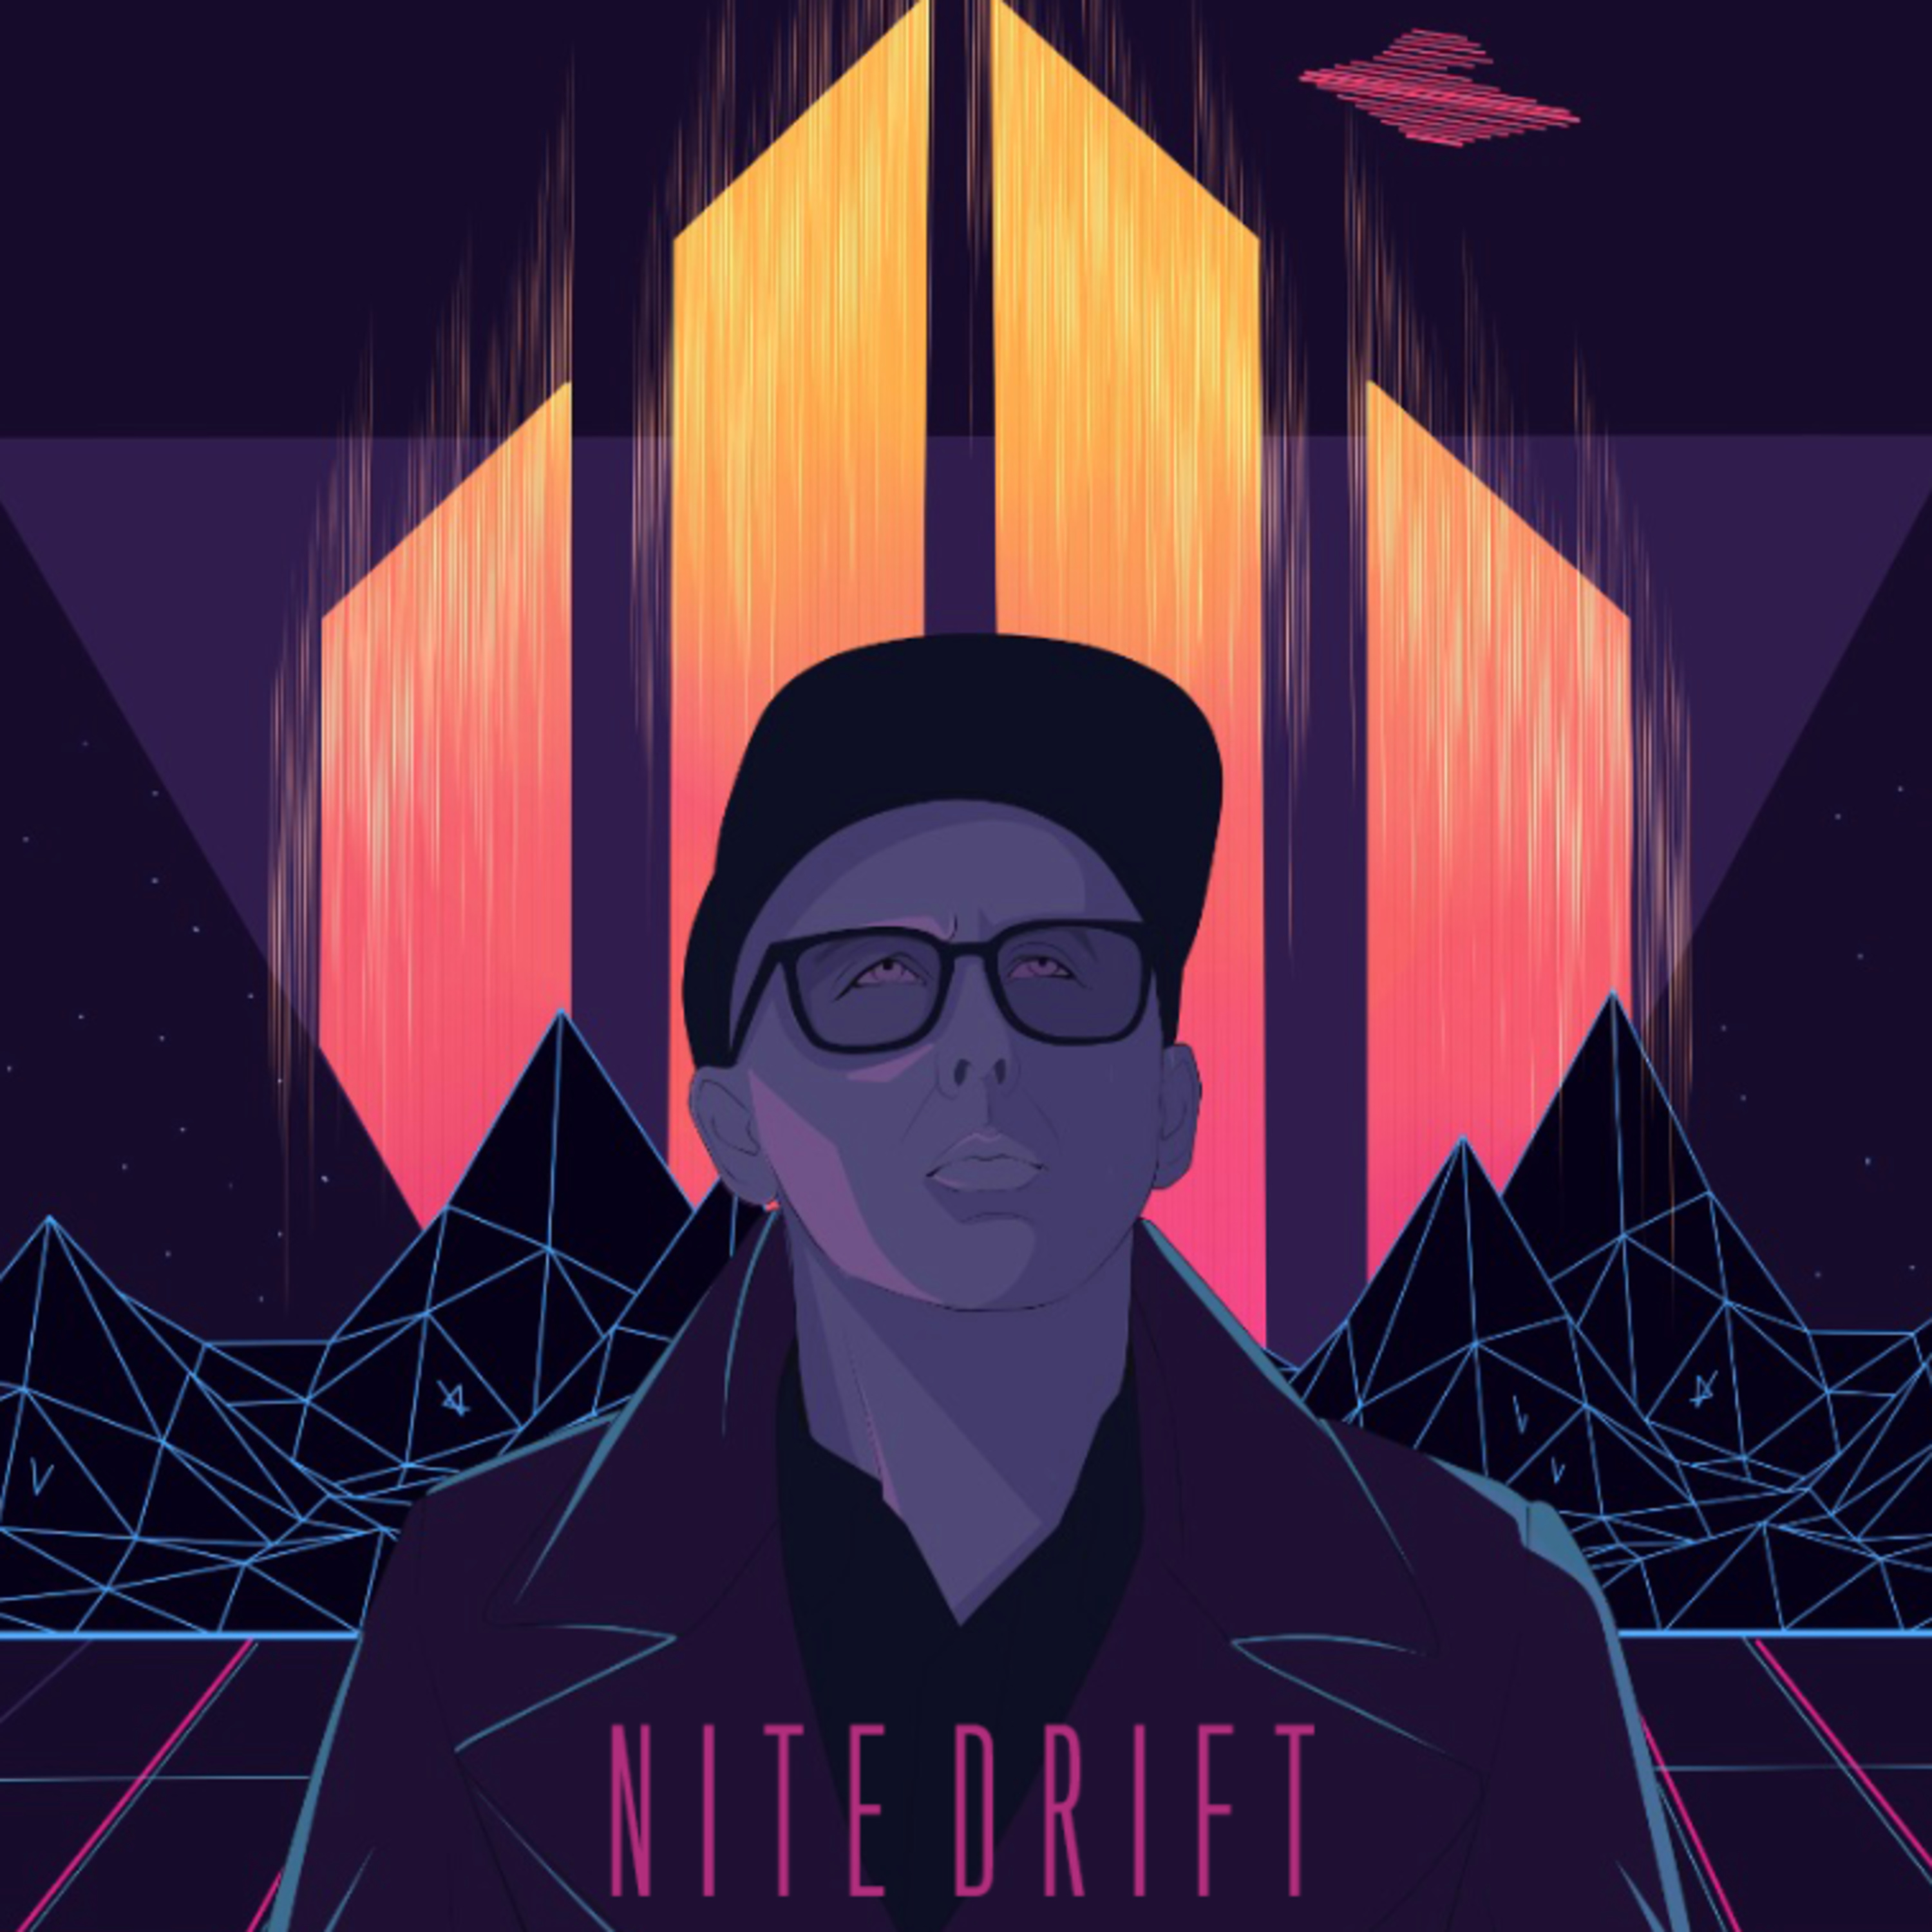 NITE DRIFT | Intuitive Stephen Williams on ghost investigating with co-hosts, Sapphire Sandalo and Darcy Staniforth